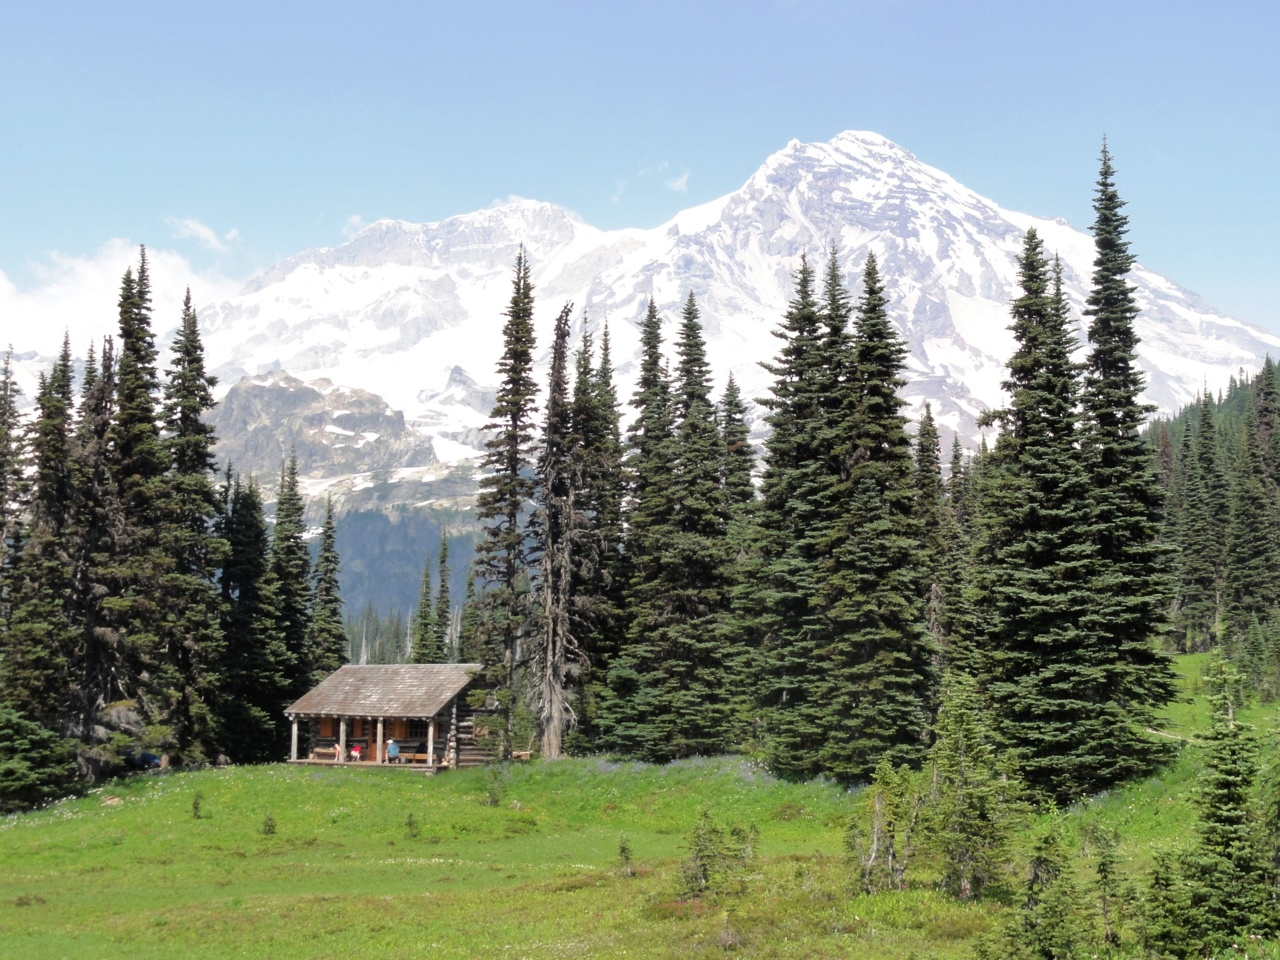 Ranger's cabin, Indian Henry meadows, in Mt. Rainier National Park, Washington, USA. Submitted by Eric Nagle. (click to enlarge)